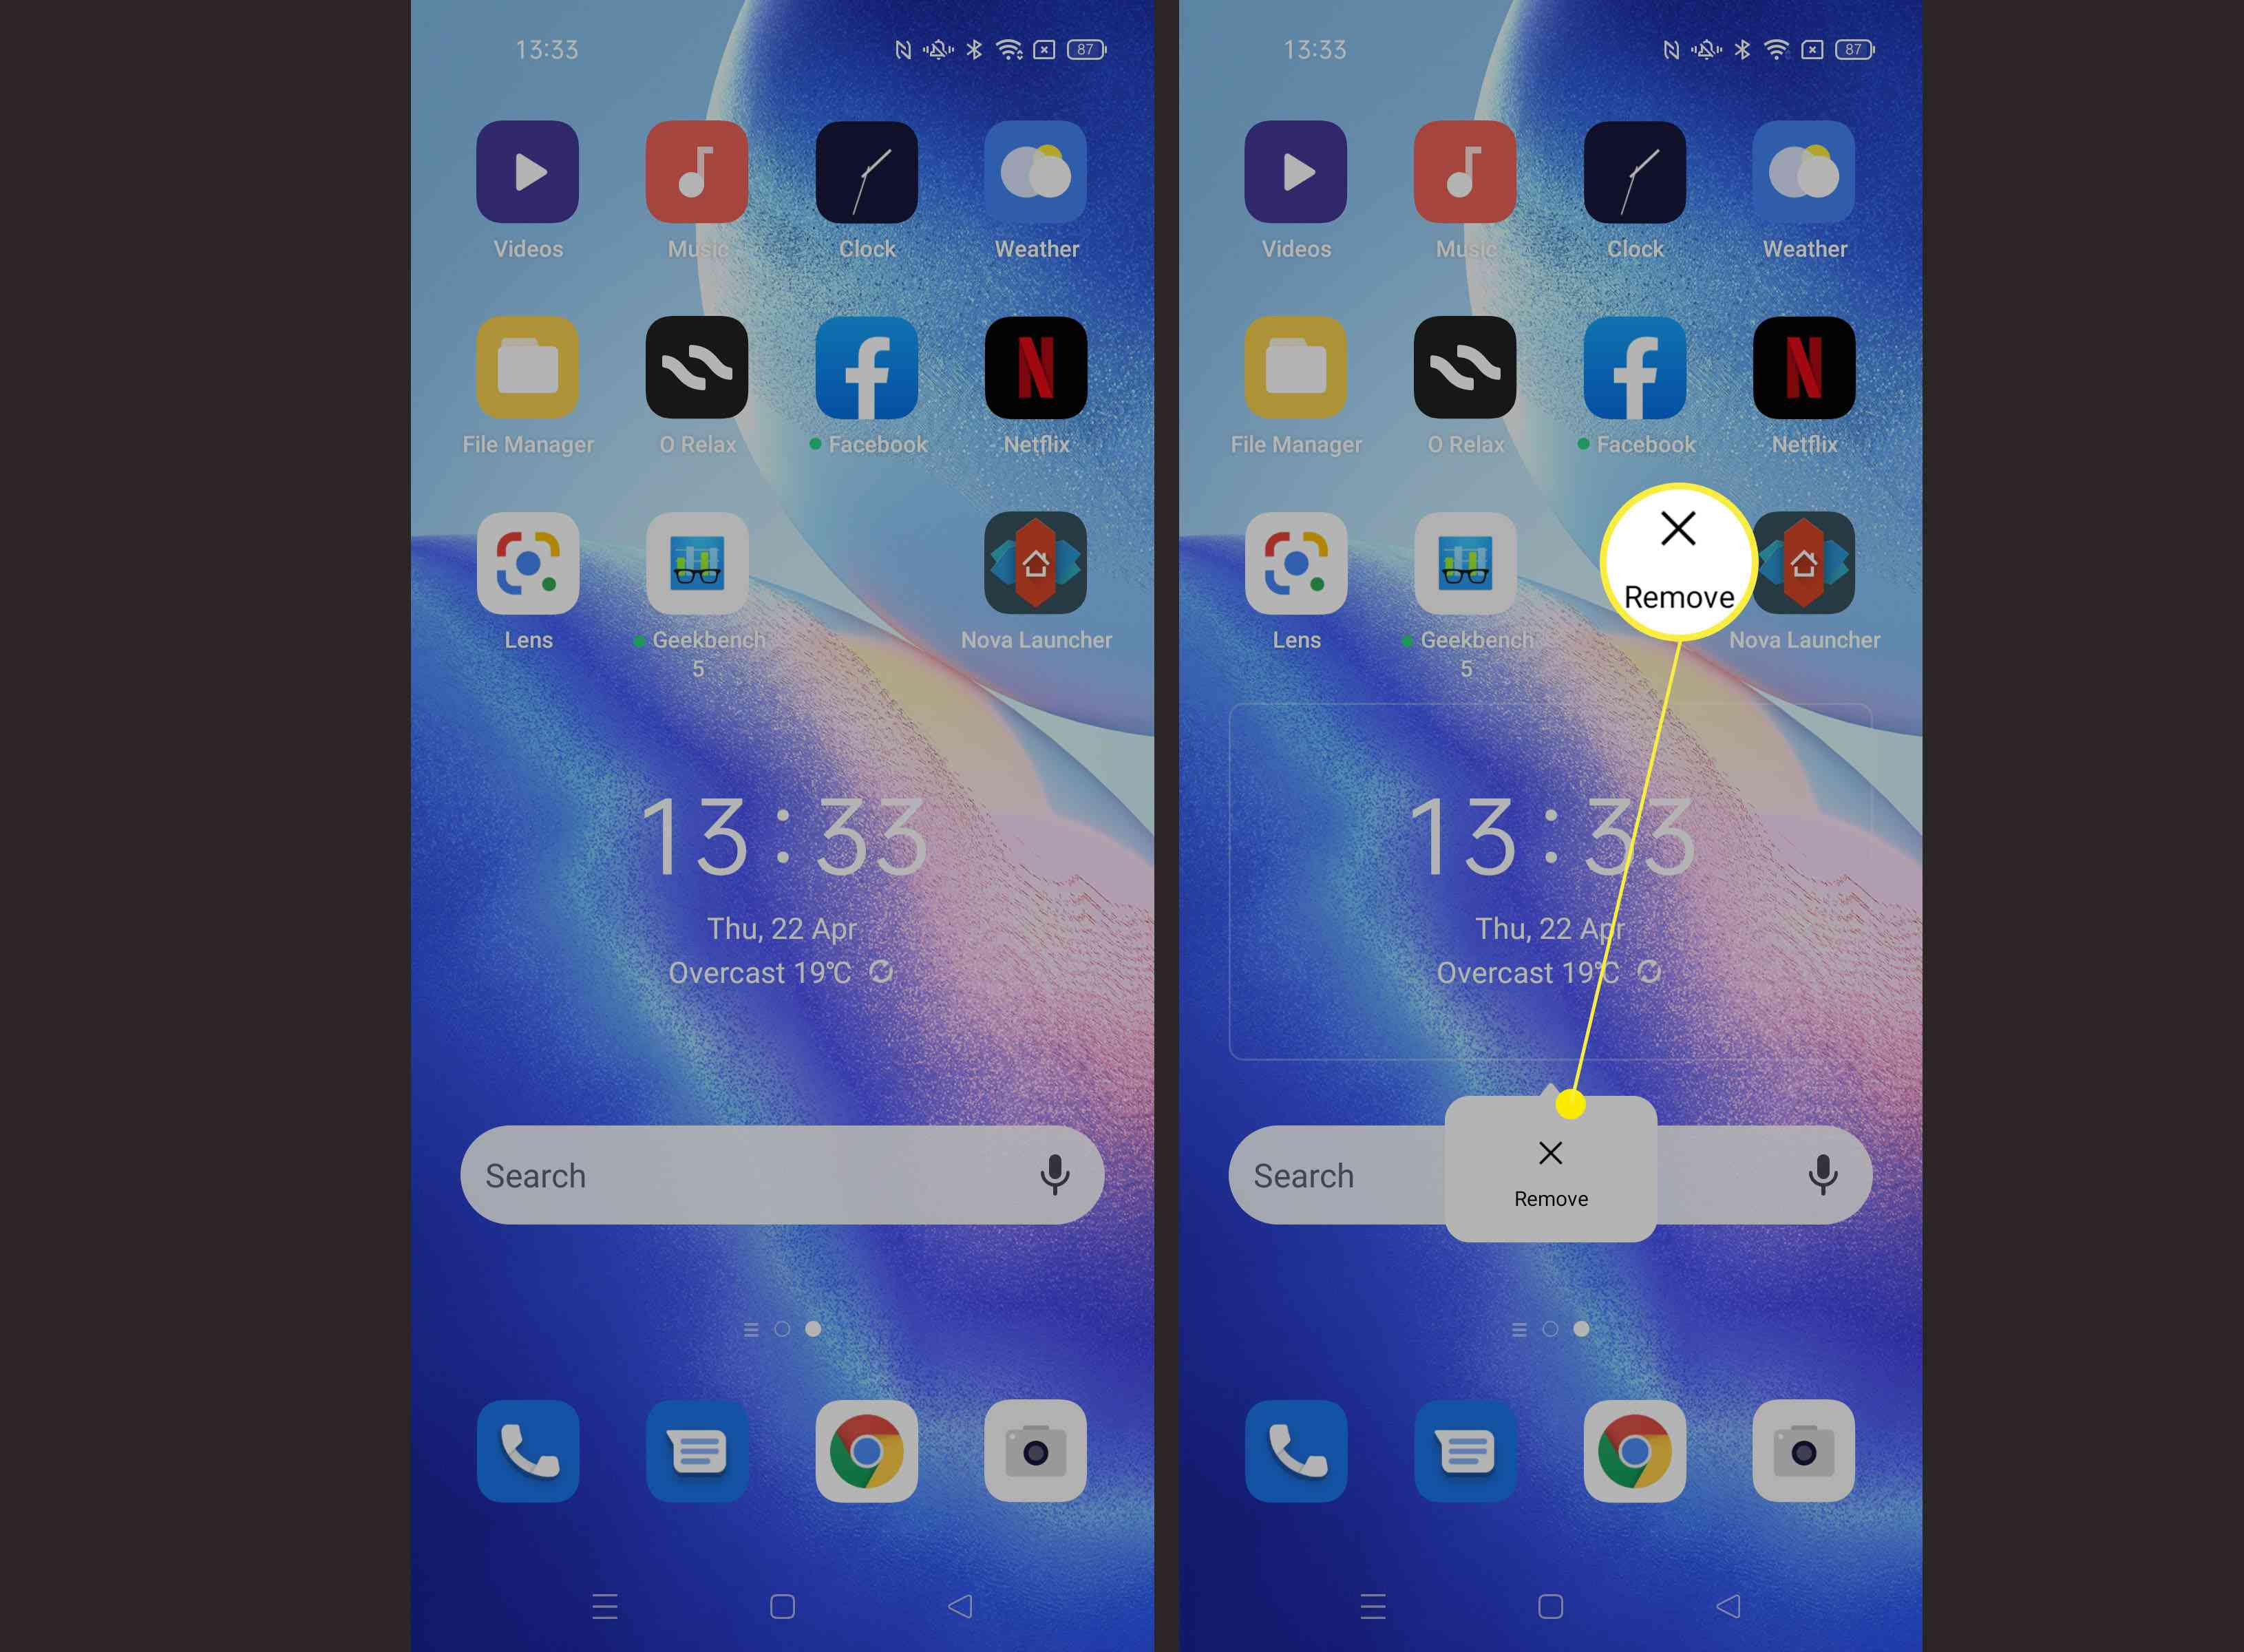 Steps required to uninstall/remove widgets on Android